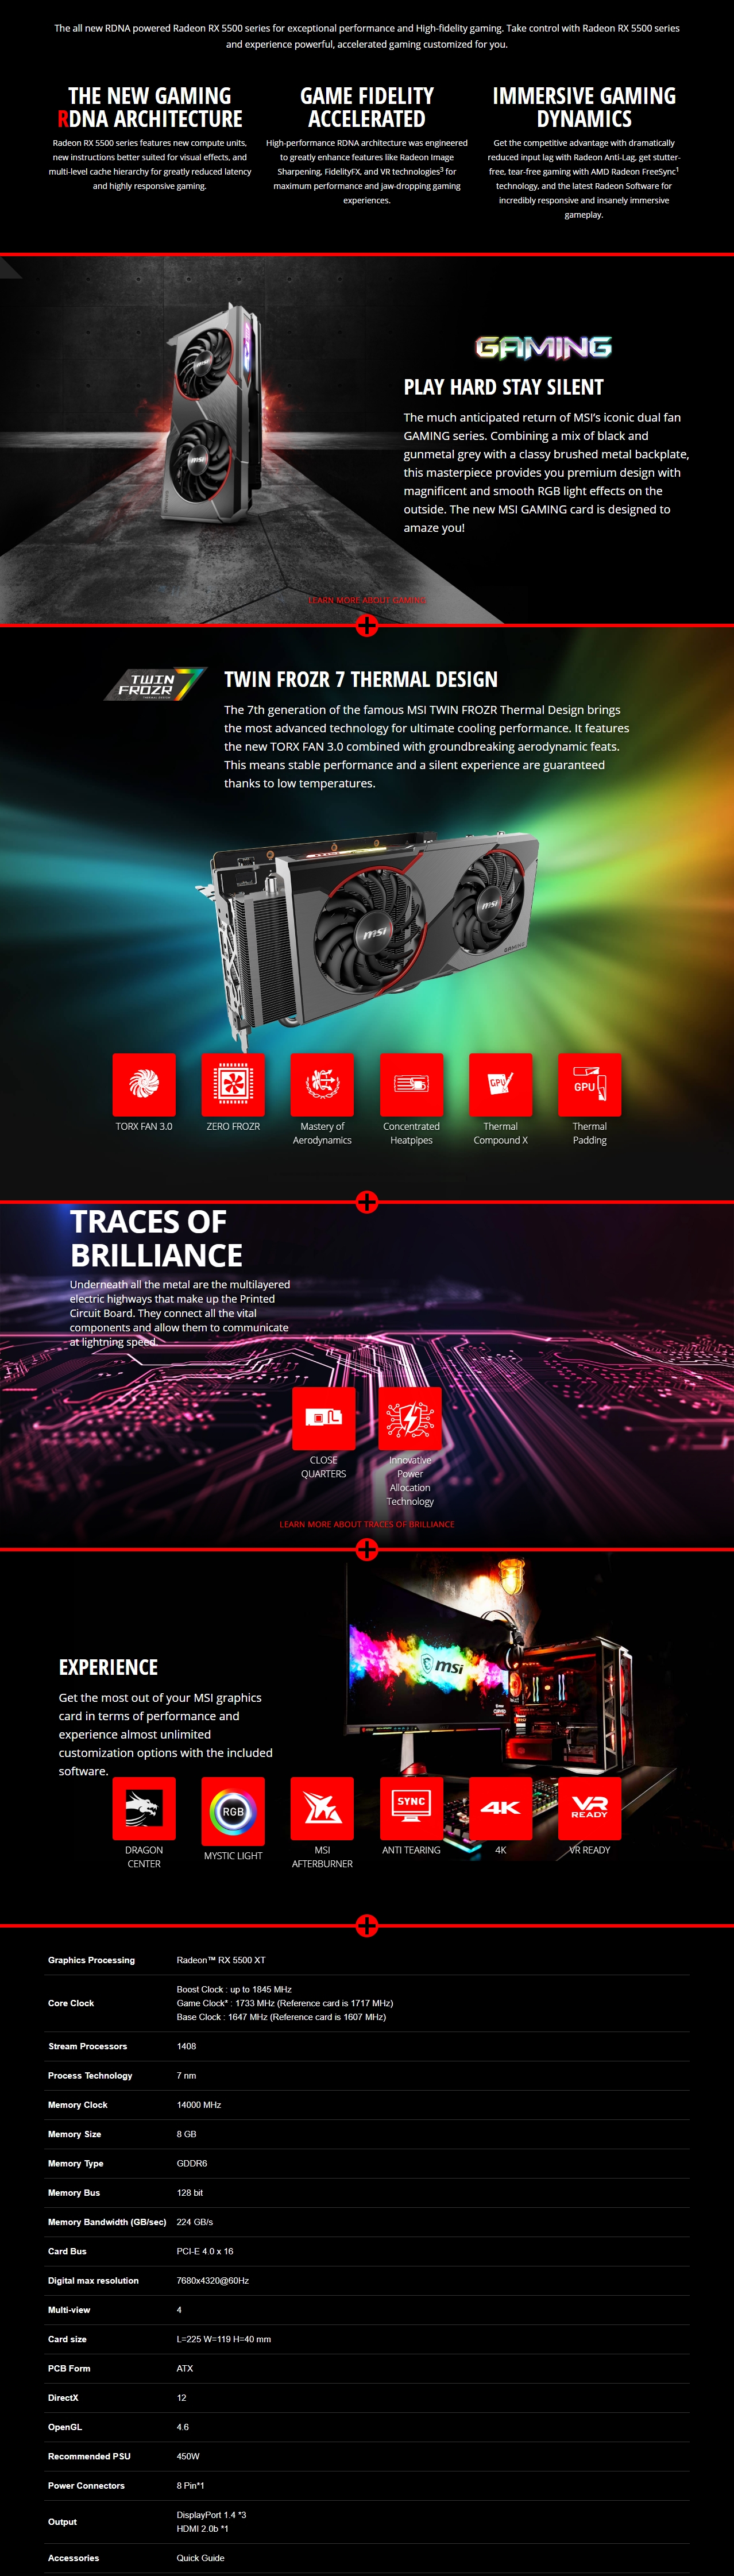 A large marketing image providing additional information about the product MSI Radeon RX 5500 XT Gaming X 8GB GDDR6 - Additional alt info not provided